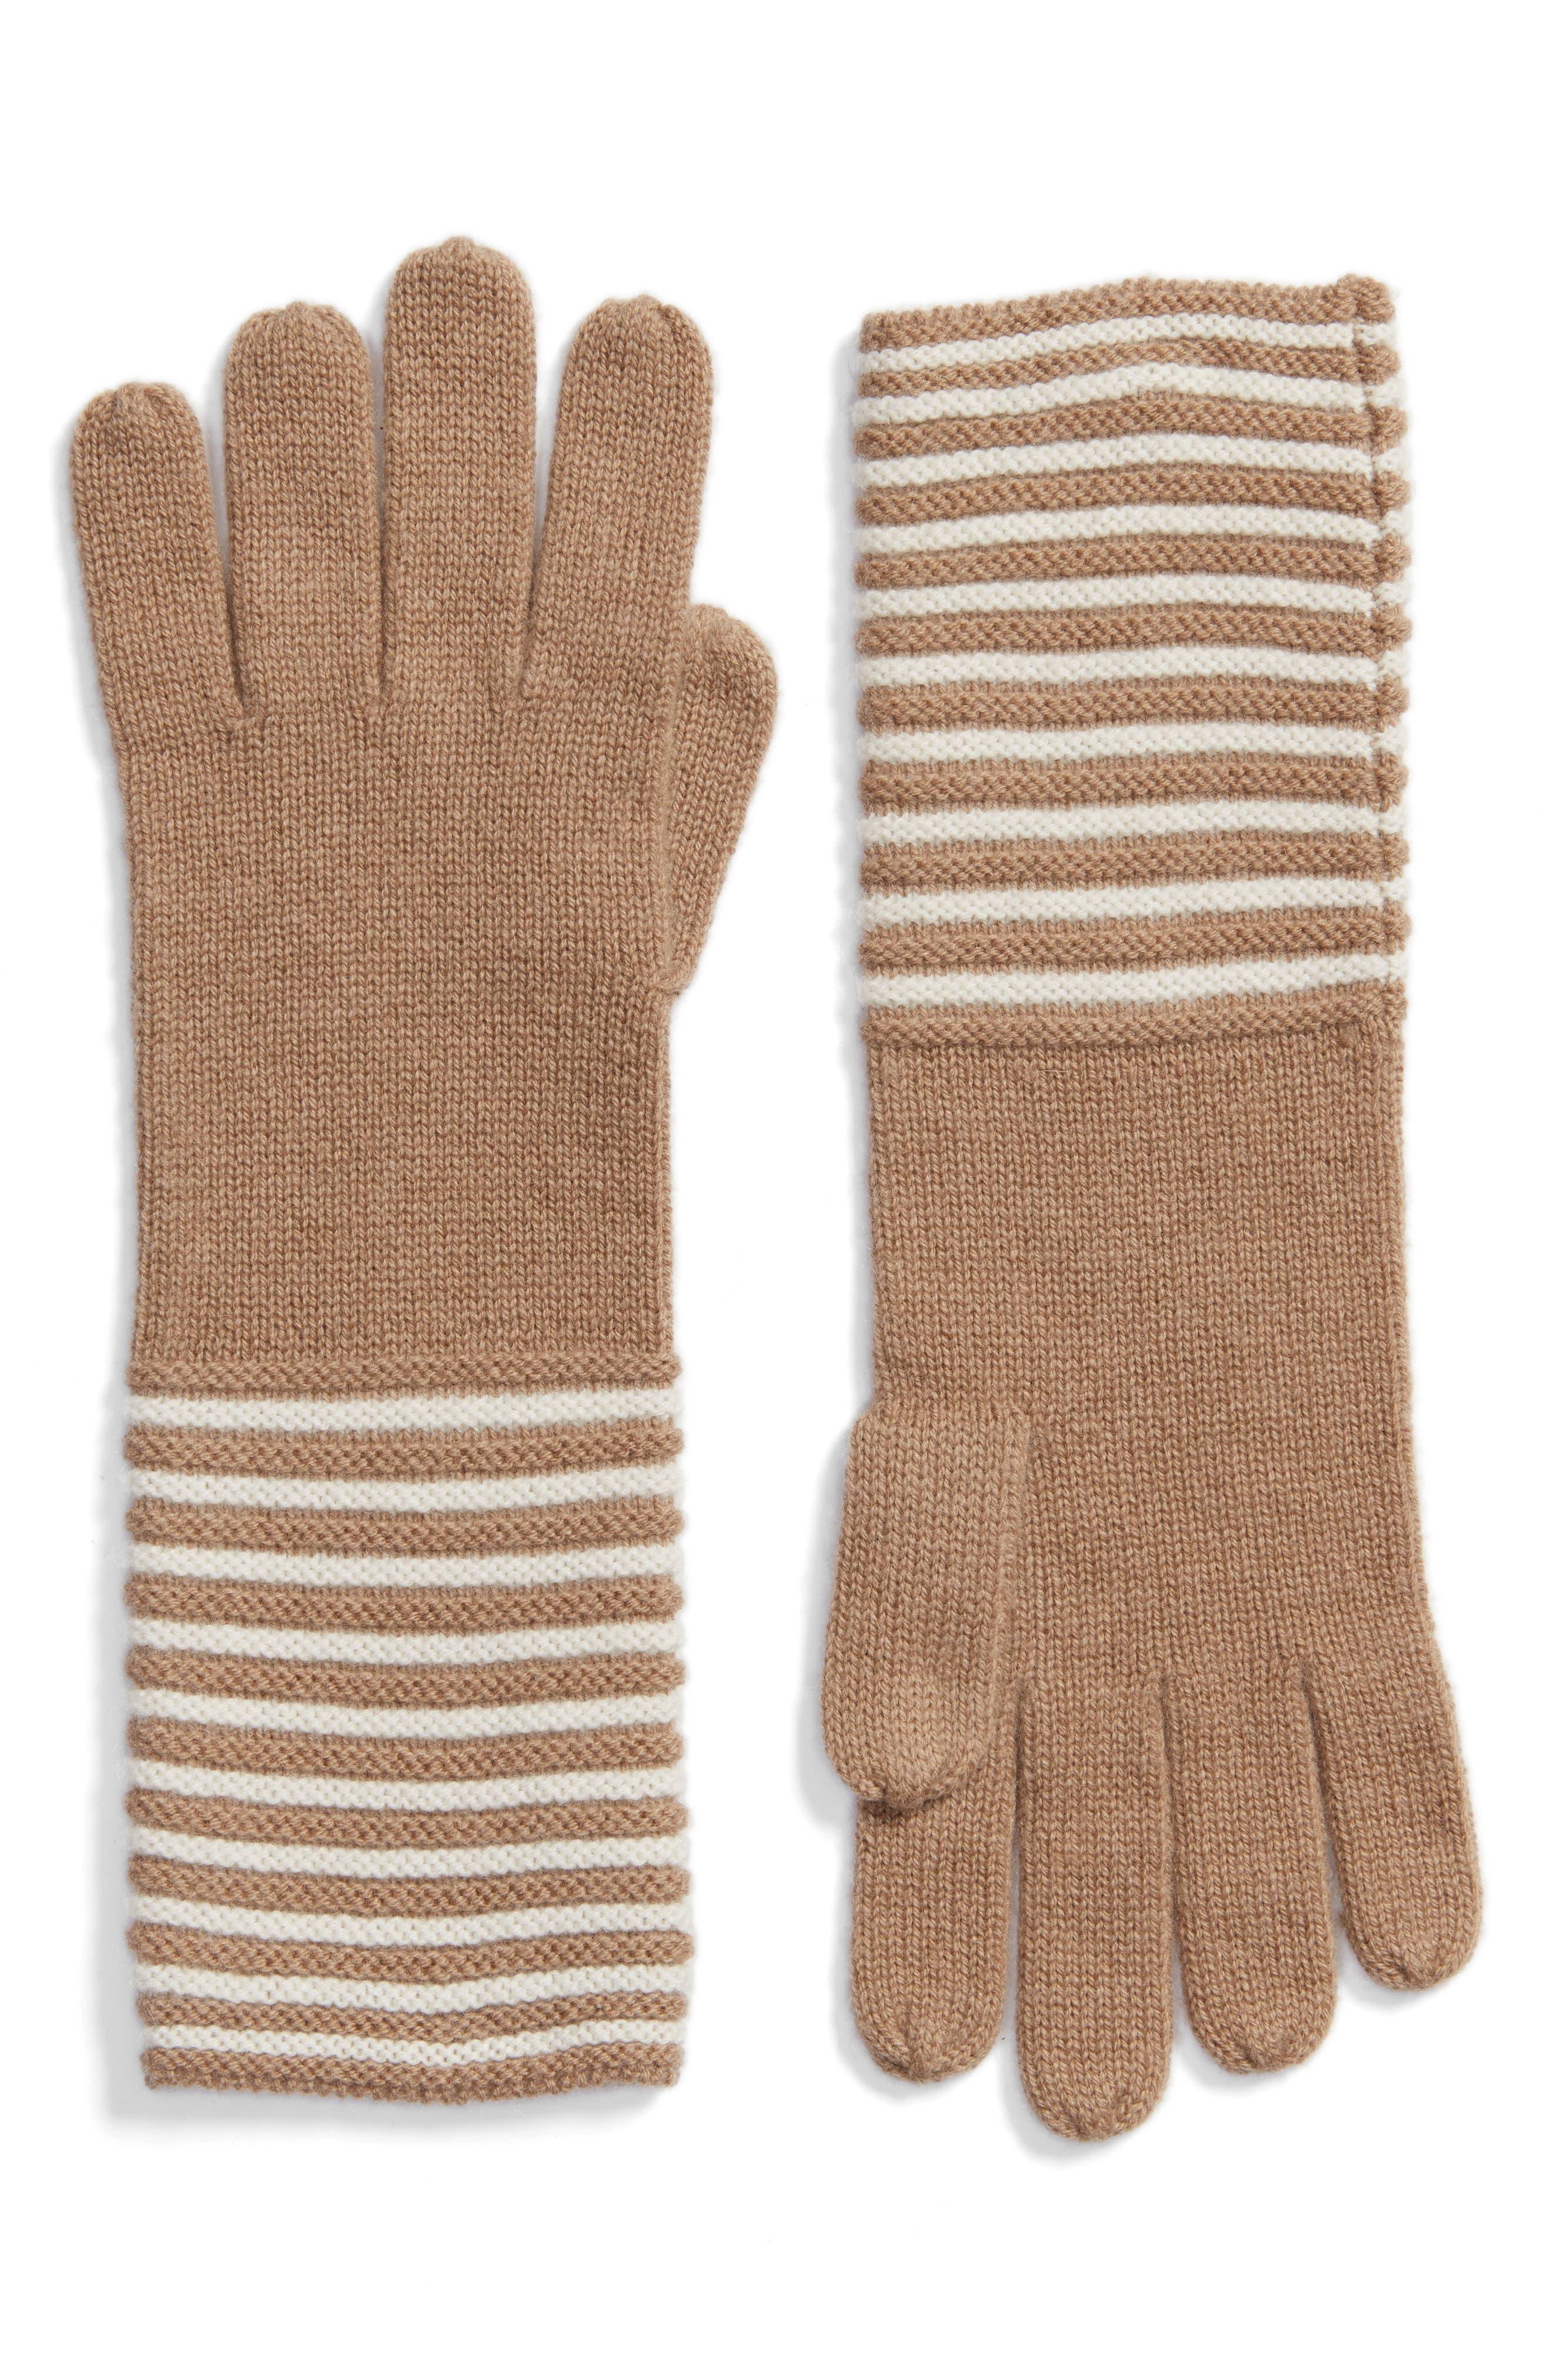 Double Links Wool & Cashmere Gloves,                         Main,                         color, Dark Camel/ Cream